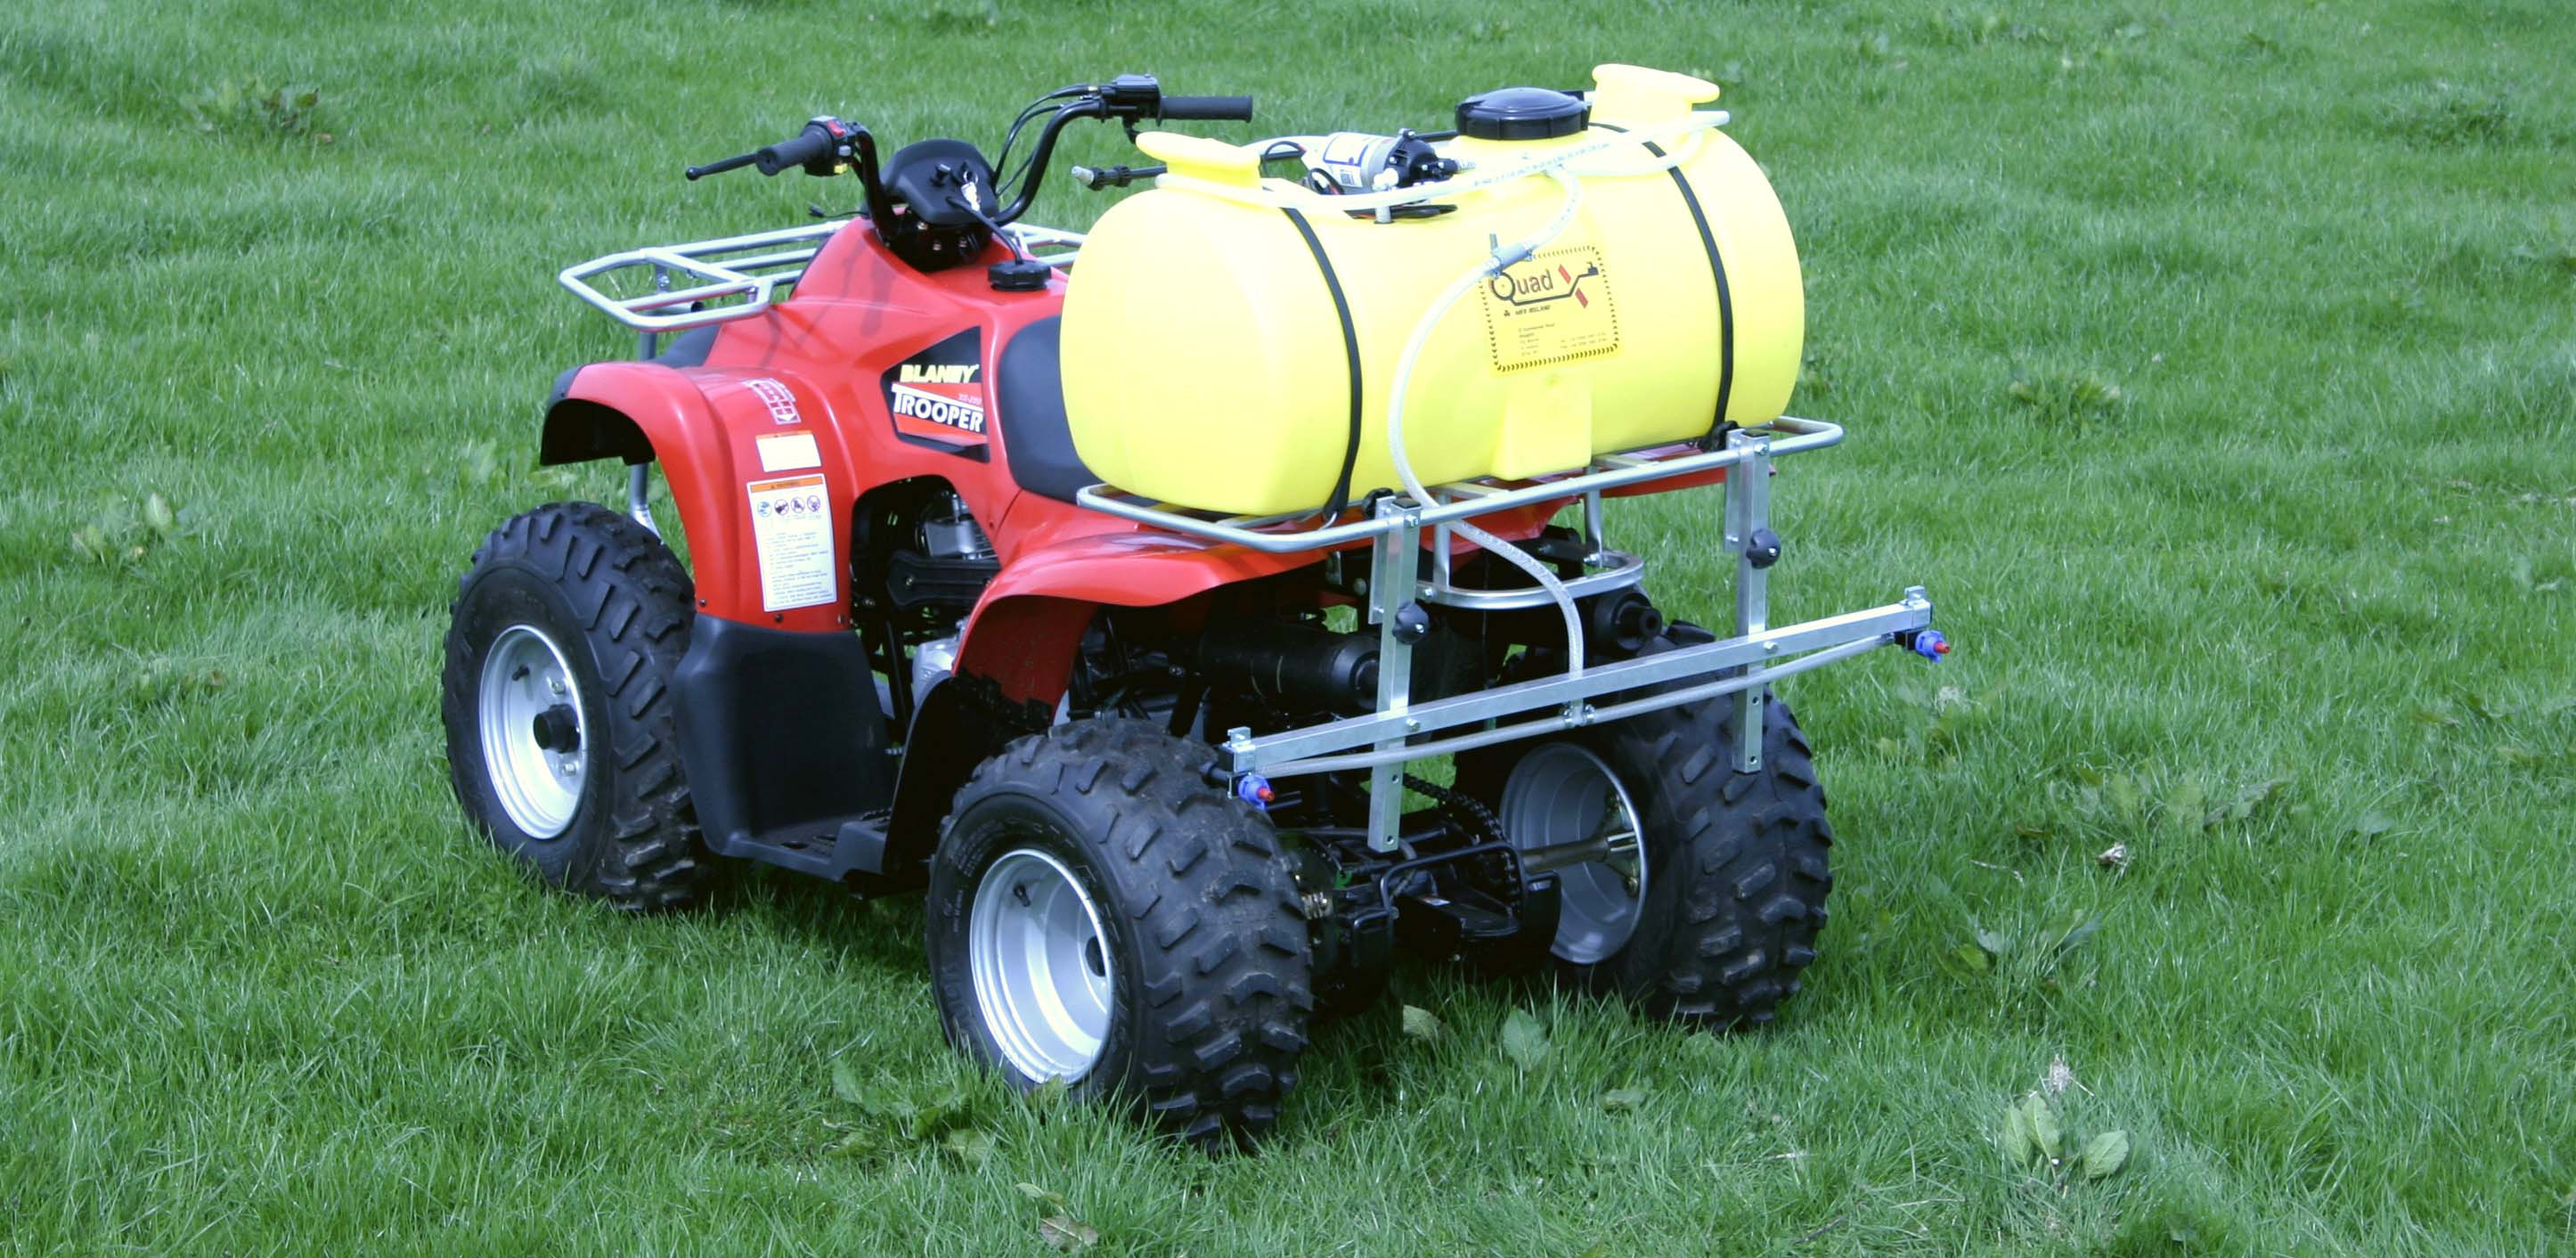 Quad Bike With ATV Accessories pictures